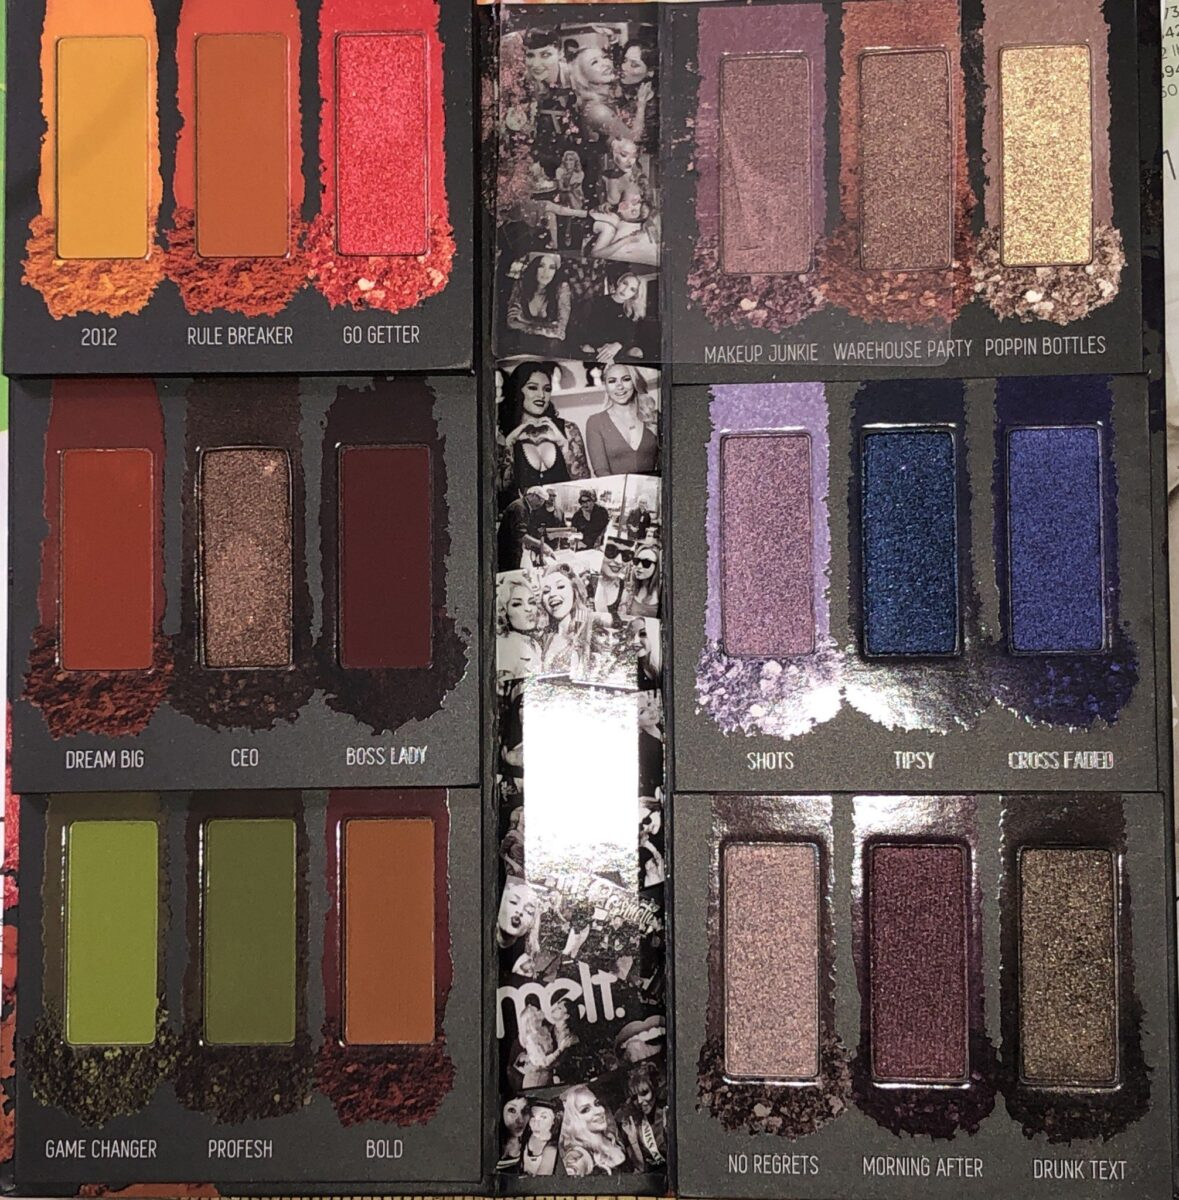 THE LEFT SIDE OF THE PALETTE STEPS GO DOWN